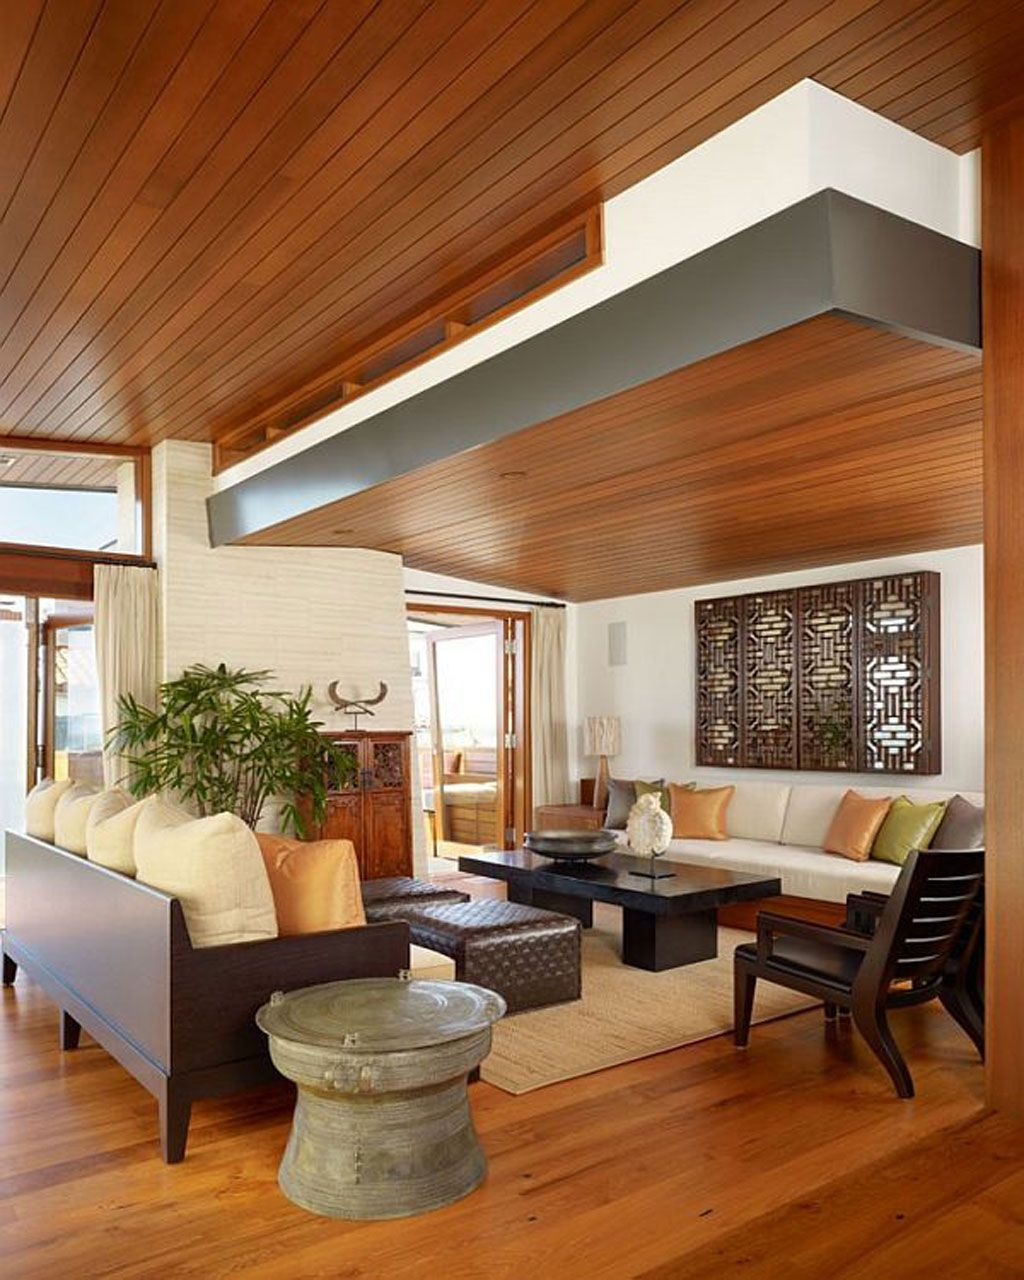 Living Room Nice House Interior 1000 images about beautiful home interiors on pinterest and summer camps